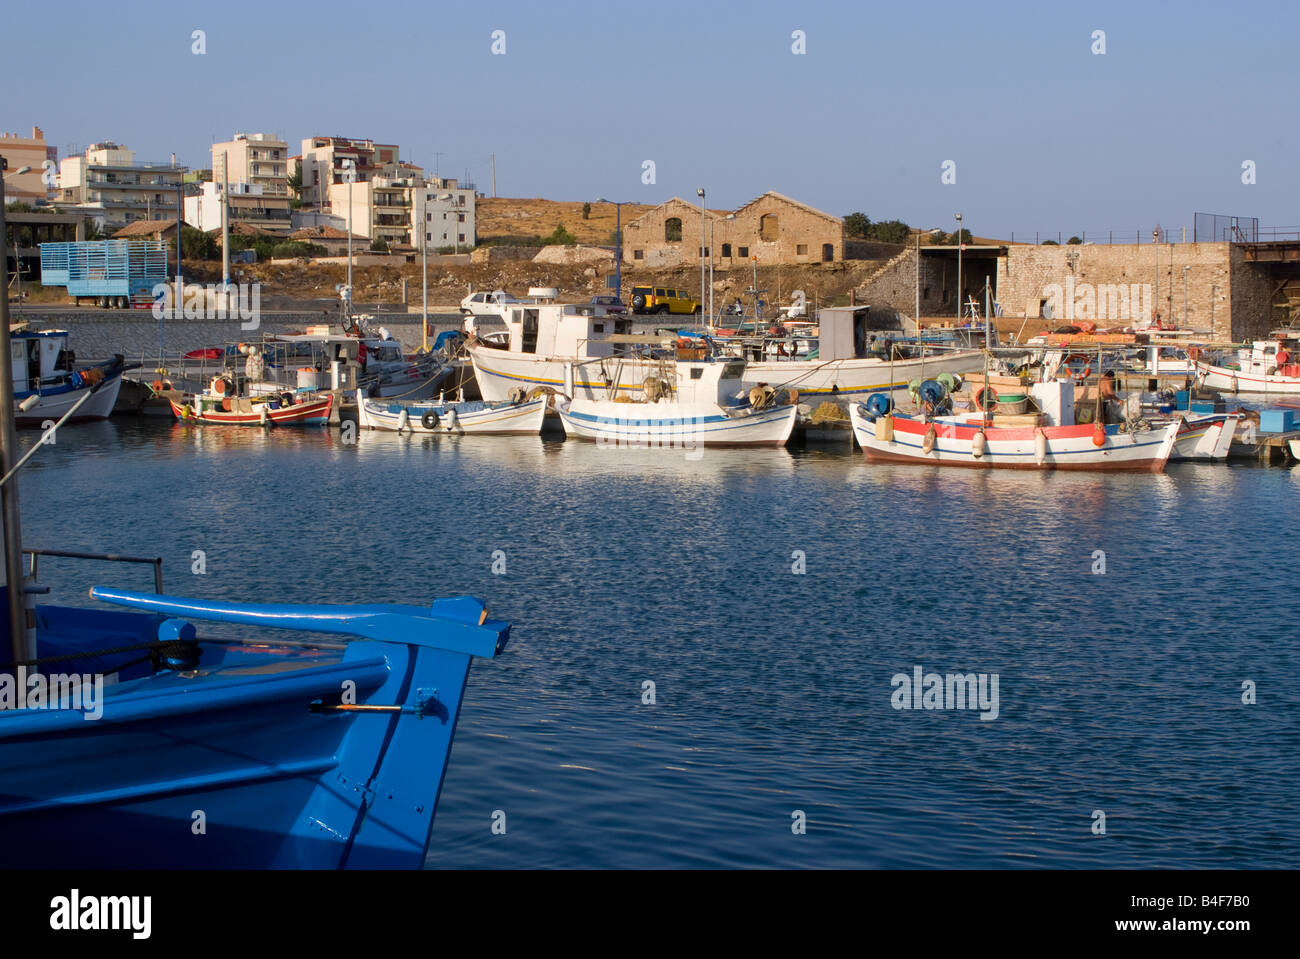 Part of the Inshore Greek Fishing Fleet in Lavrion Harbour Greek Mainland Aegean Sea Greece - Stock Image